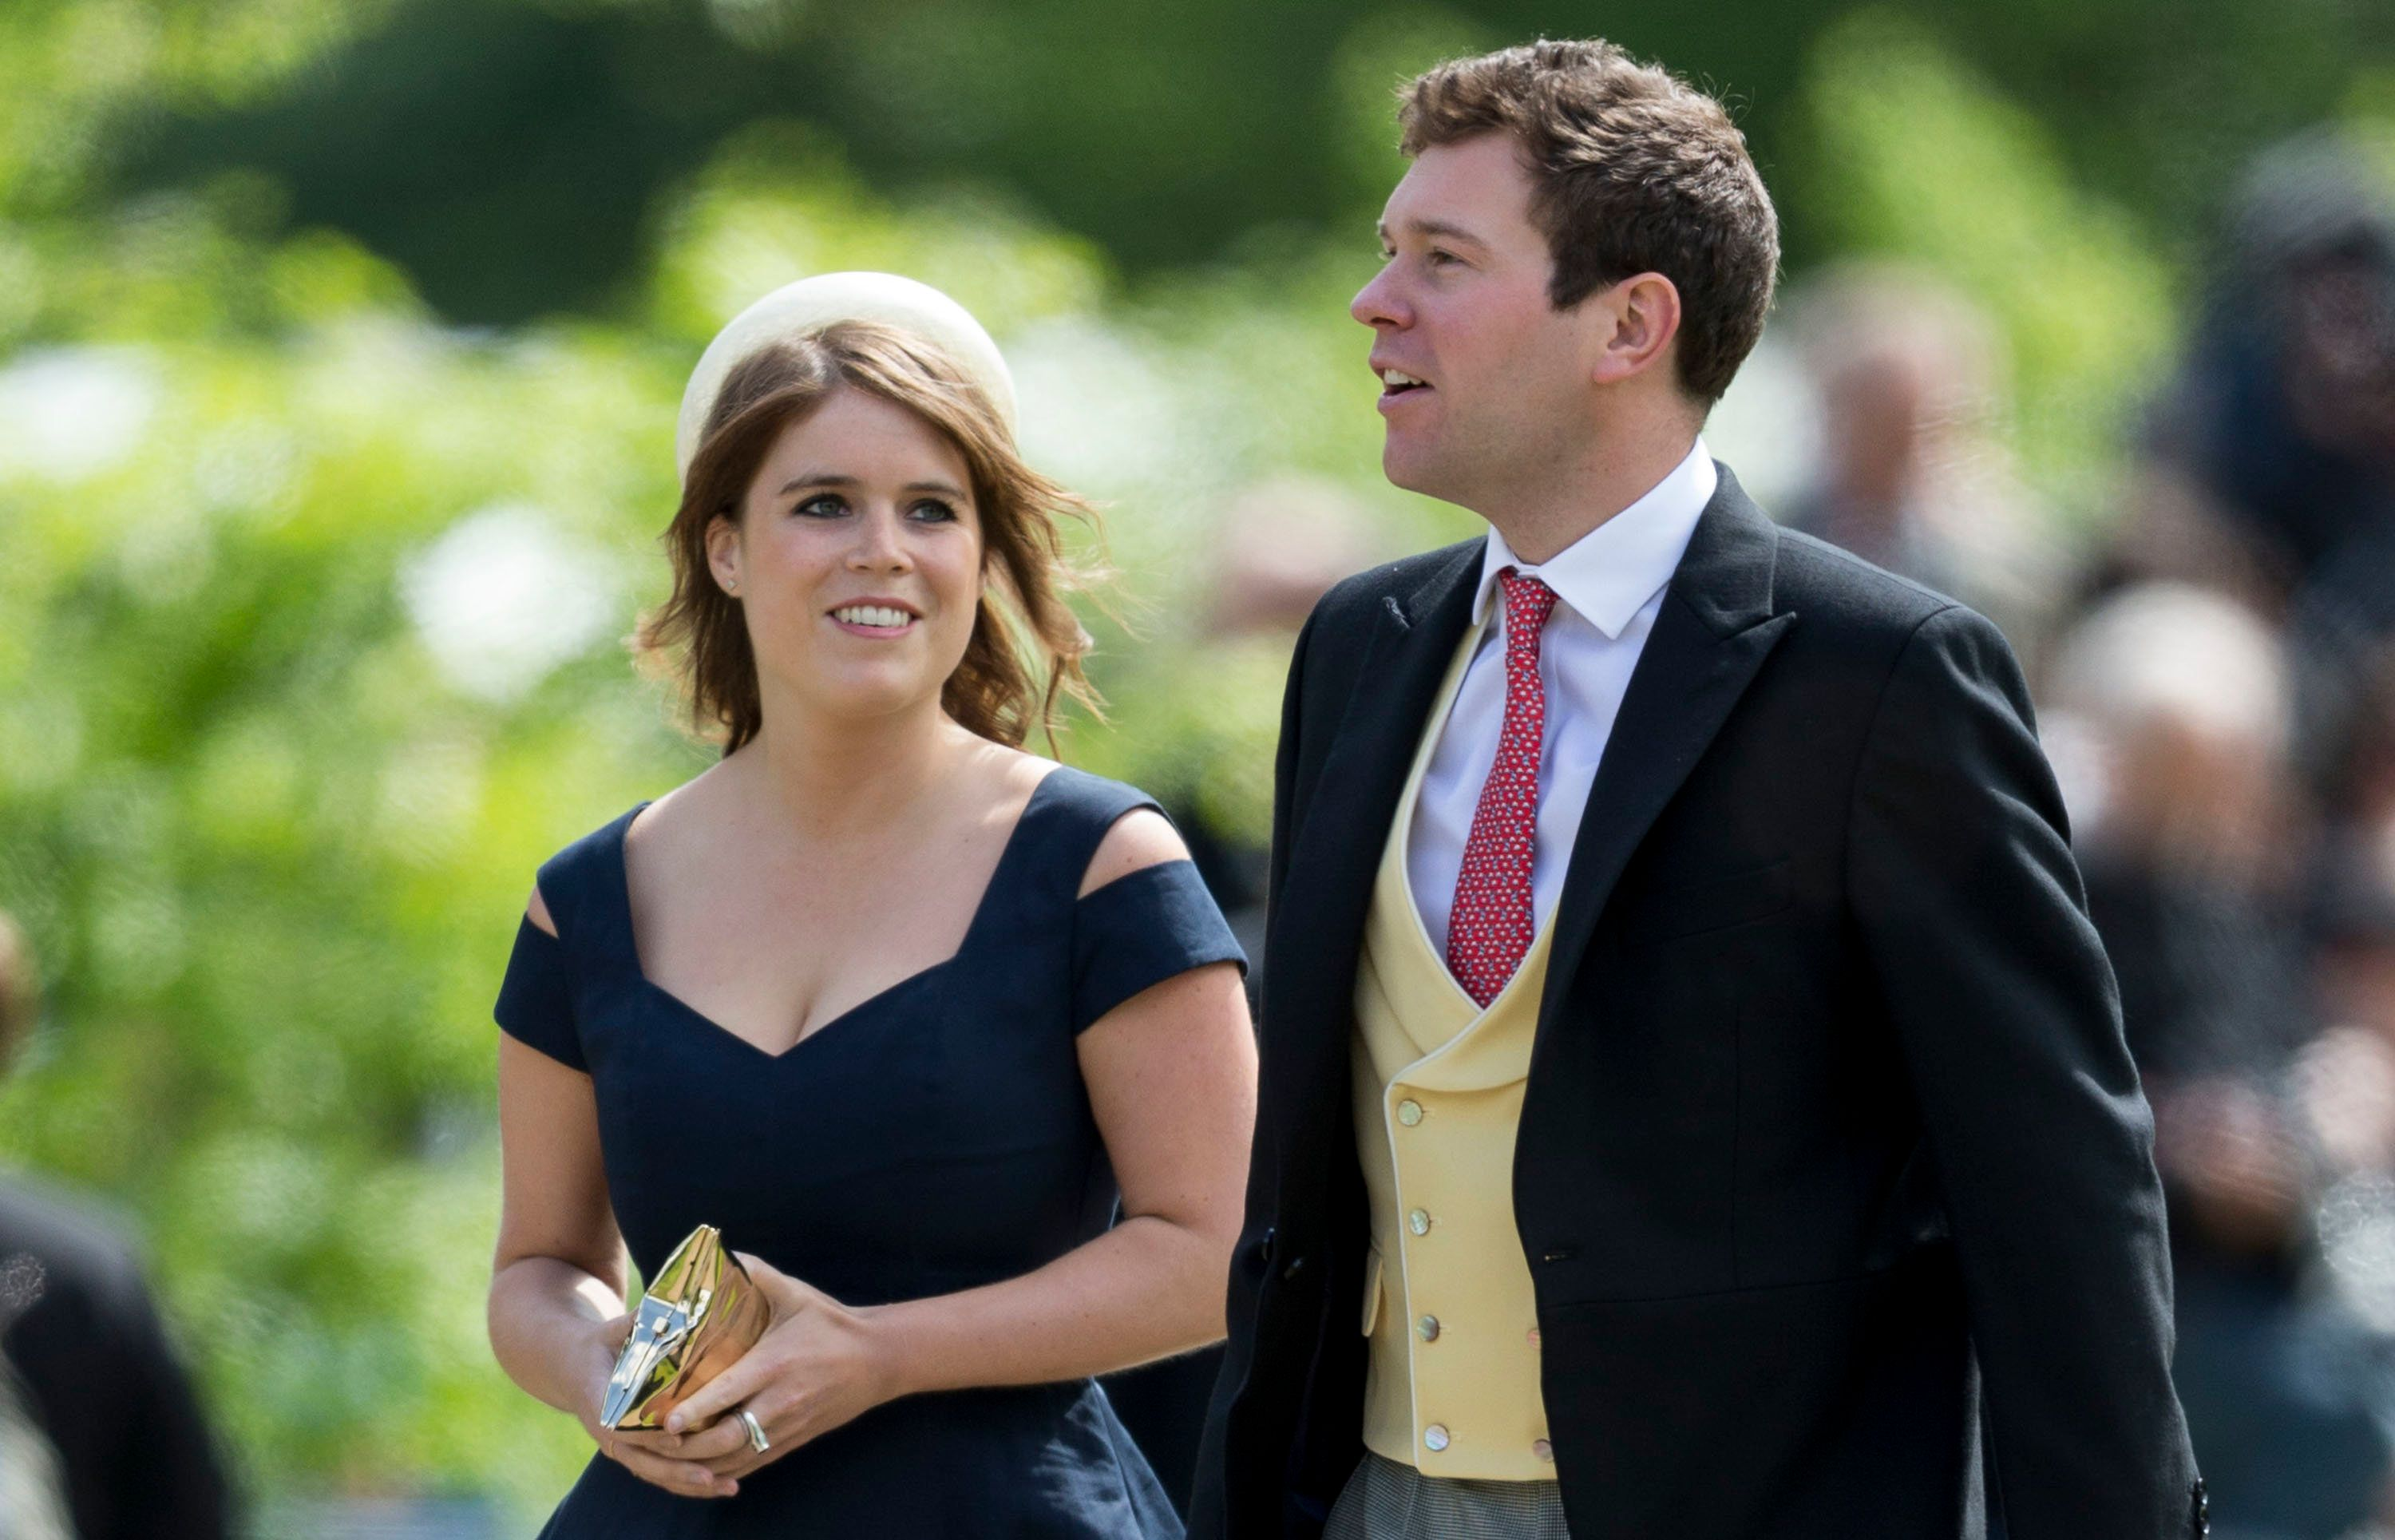 "Princess Eugenie and Jack Brooksbank's <a href=""https://www.telegraph.co.uk/news/0/princess-eugenie-marry-jack-brooksbank-october-18-date-second/"" target=""_blank"" rel=""noopener noreferrer"">Oct. 12 wedding at Windsor Castle</a> will be plastic-free, Eugenie says."